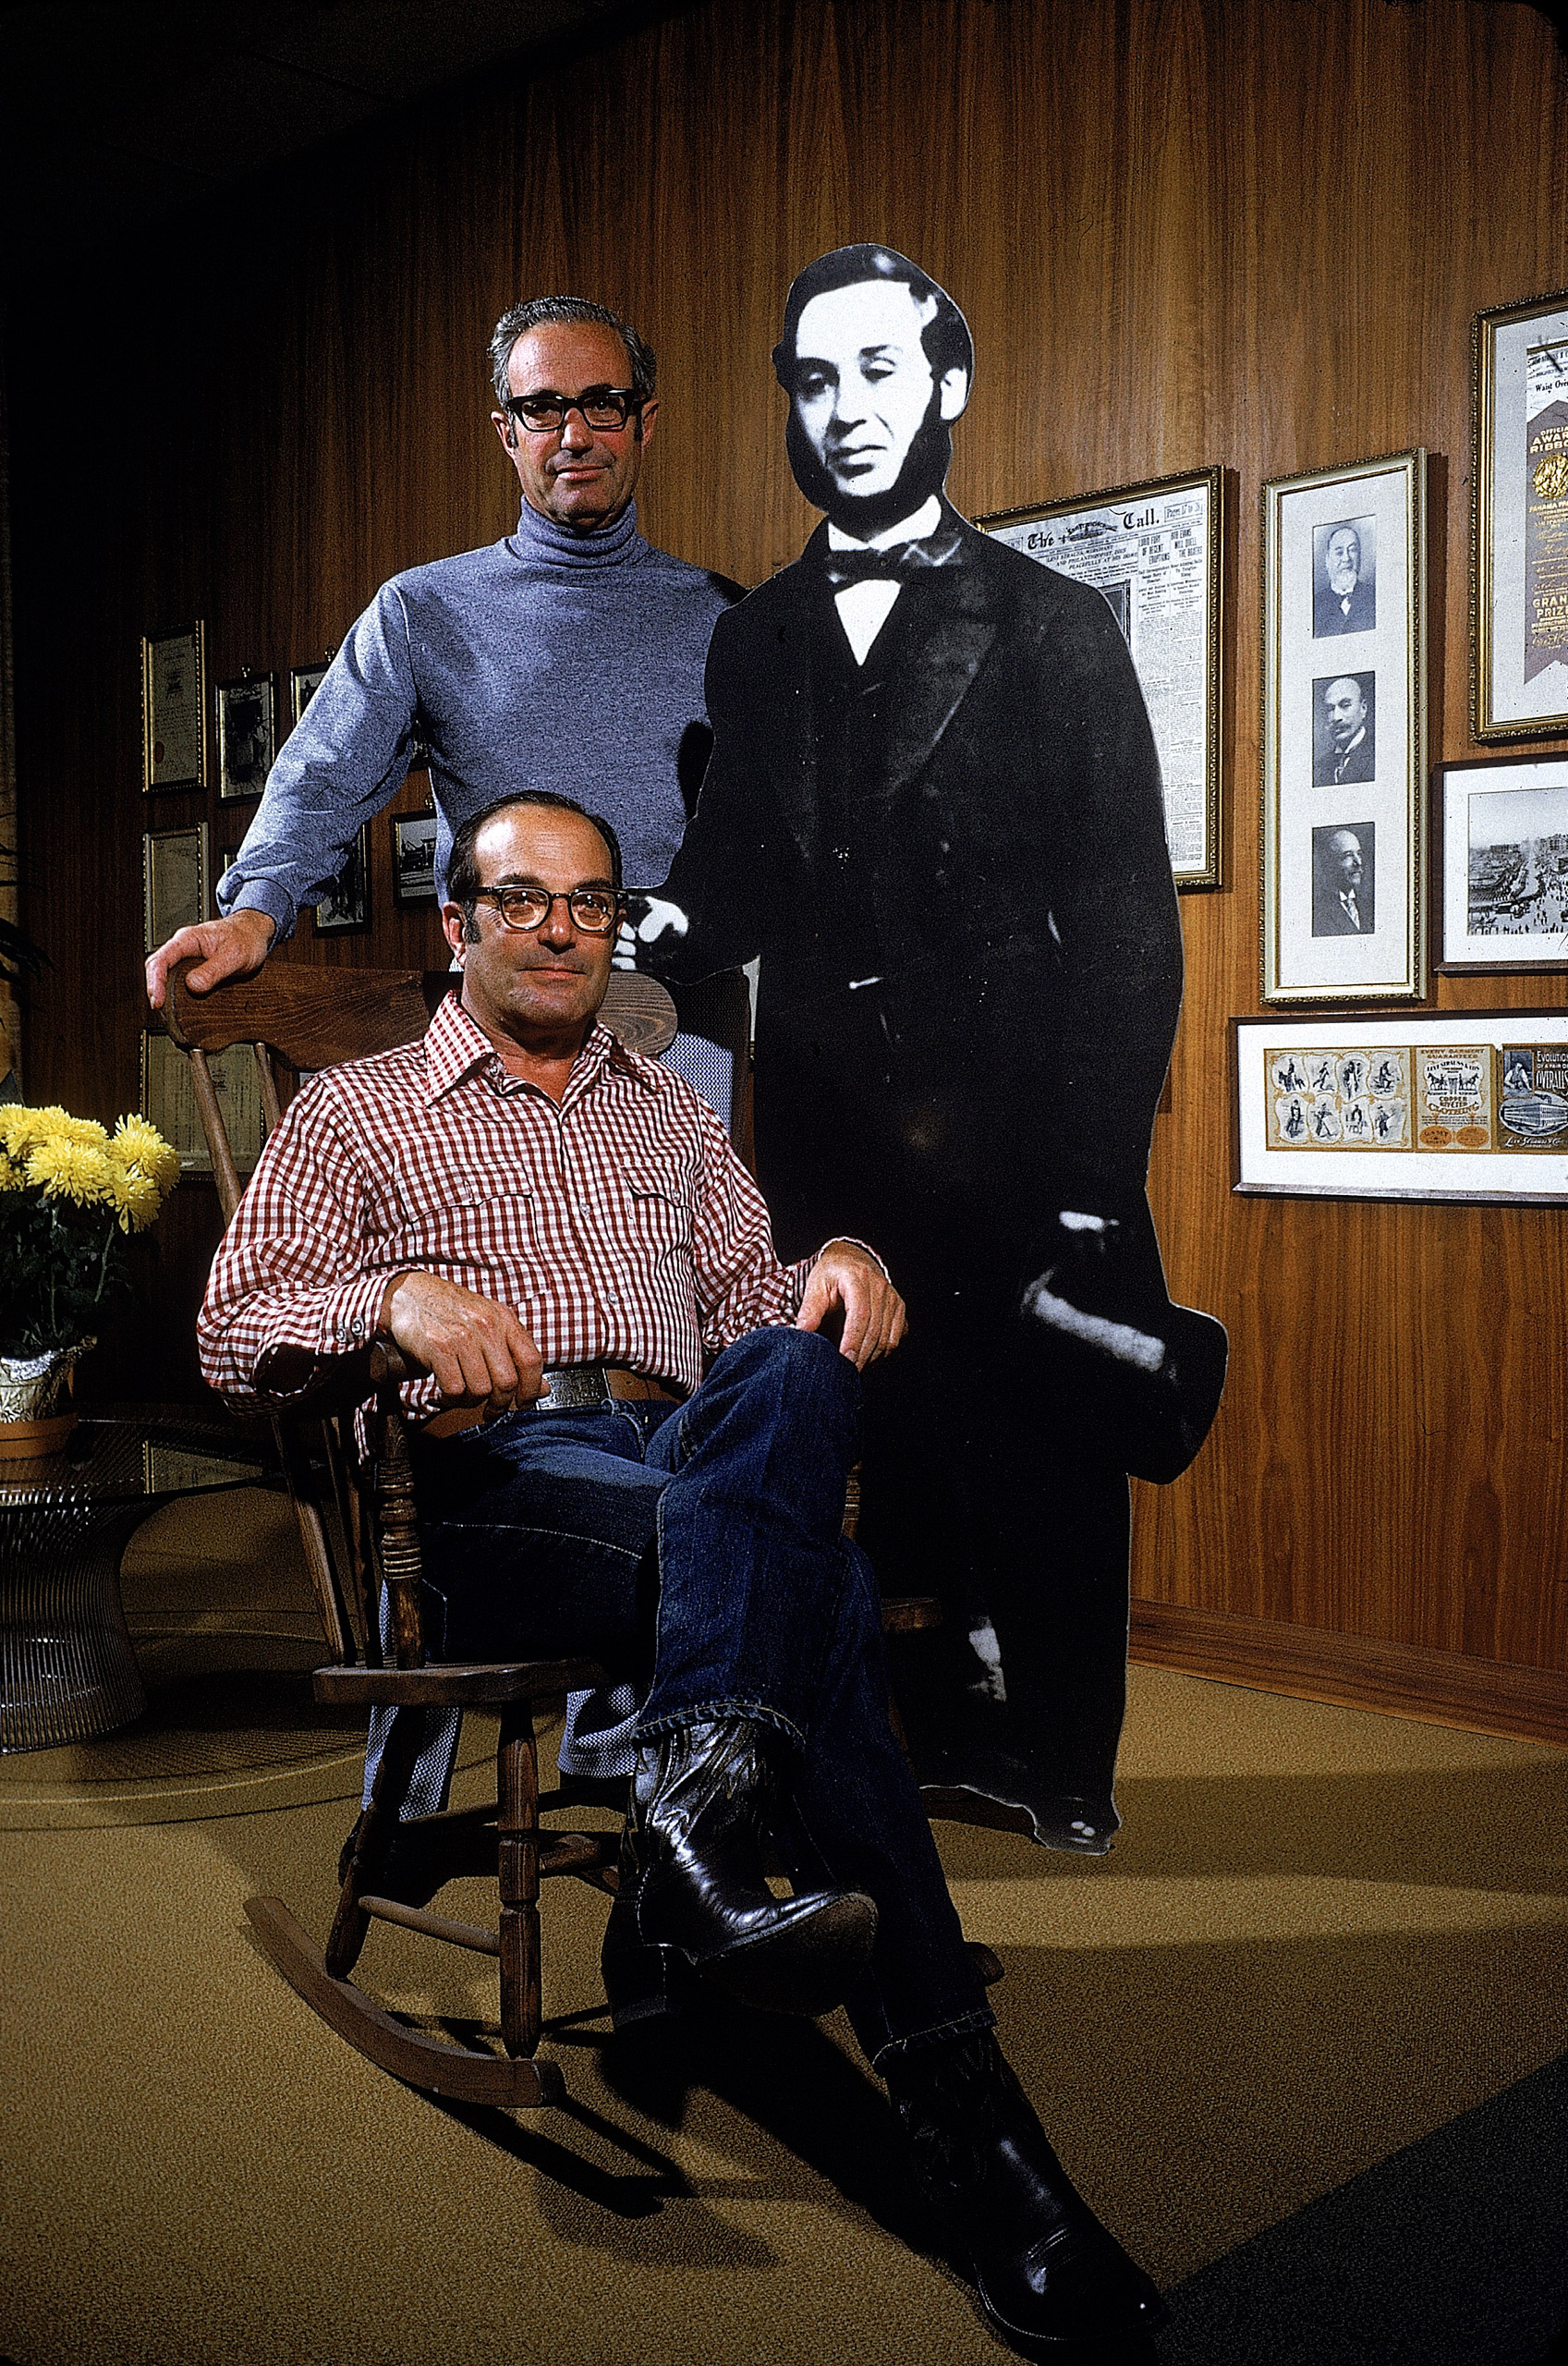 Peter Haas, President of Levi Strauss (seated) and former company president, his brother Walter (standing), next to cut-out of company founder, 1972.